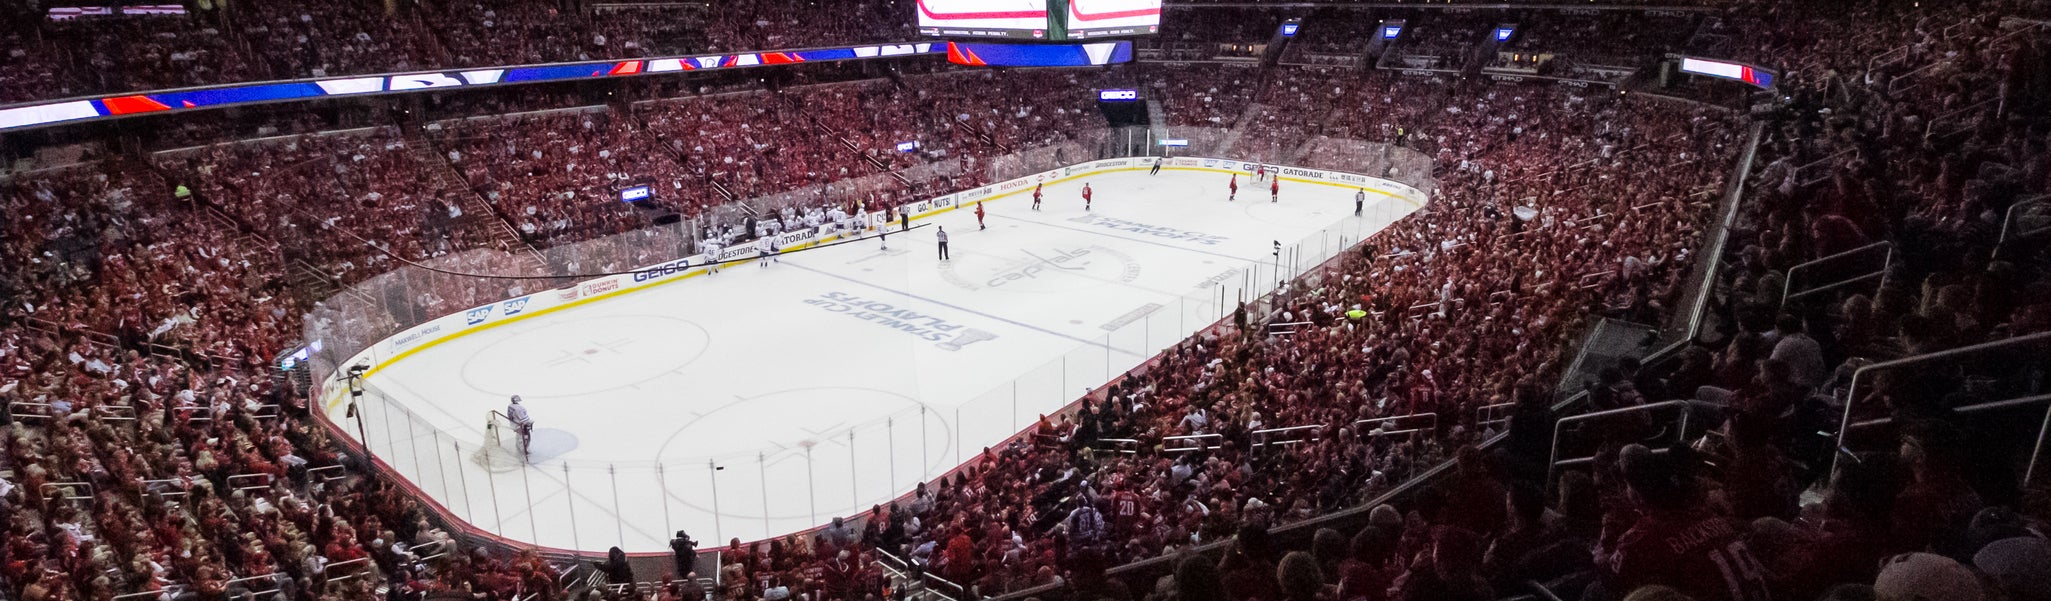 Seat view from Acela Level Corner 211 at Capital One Arena